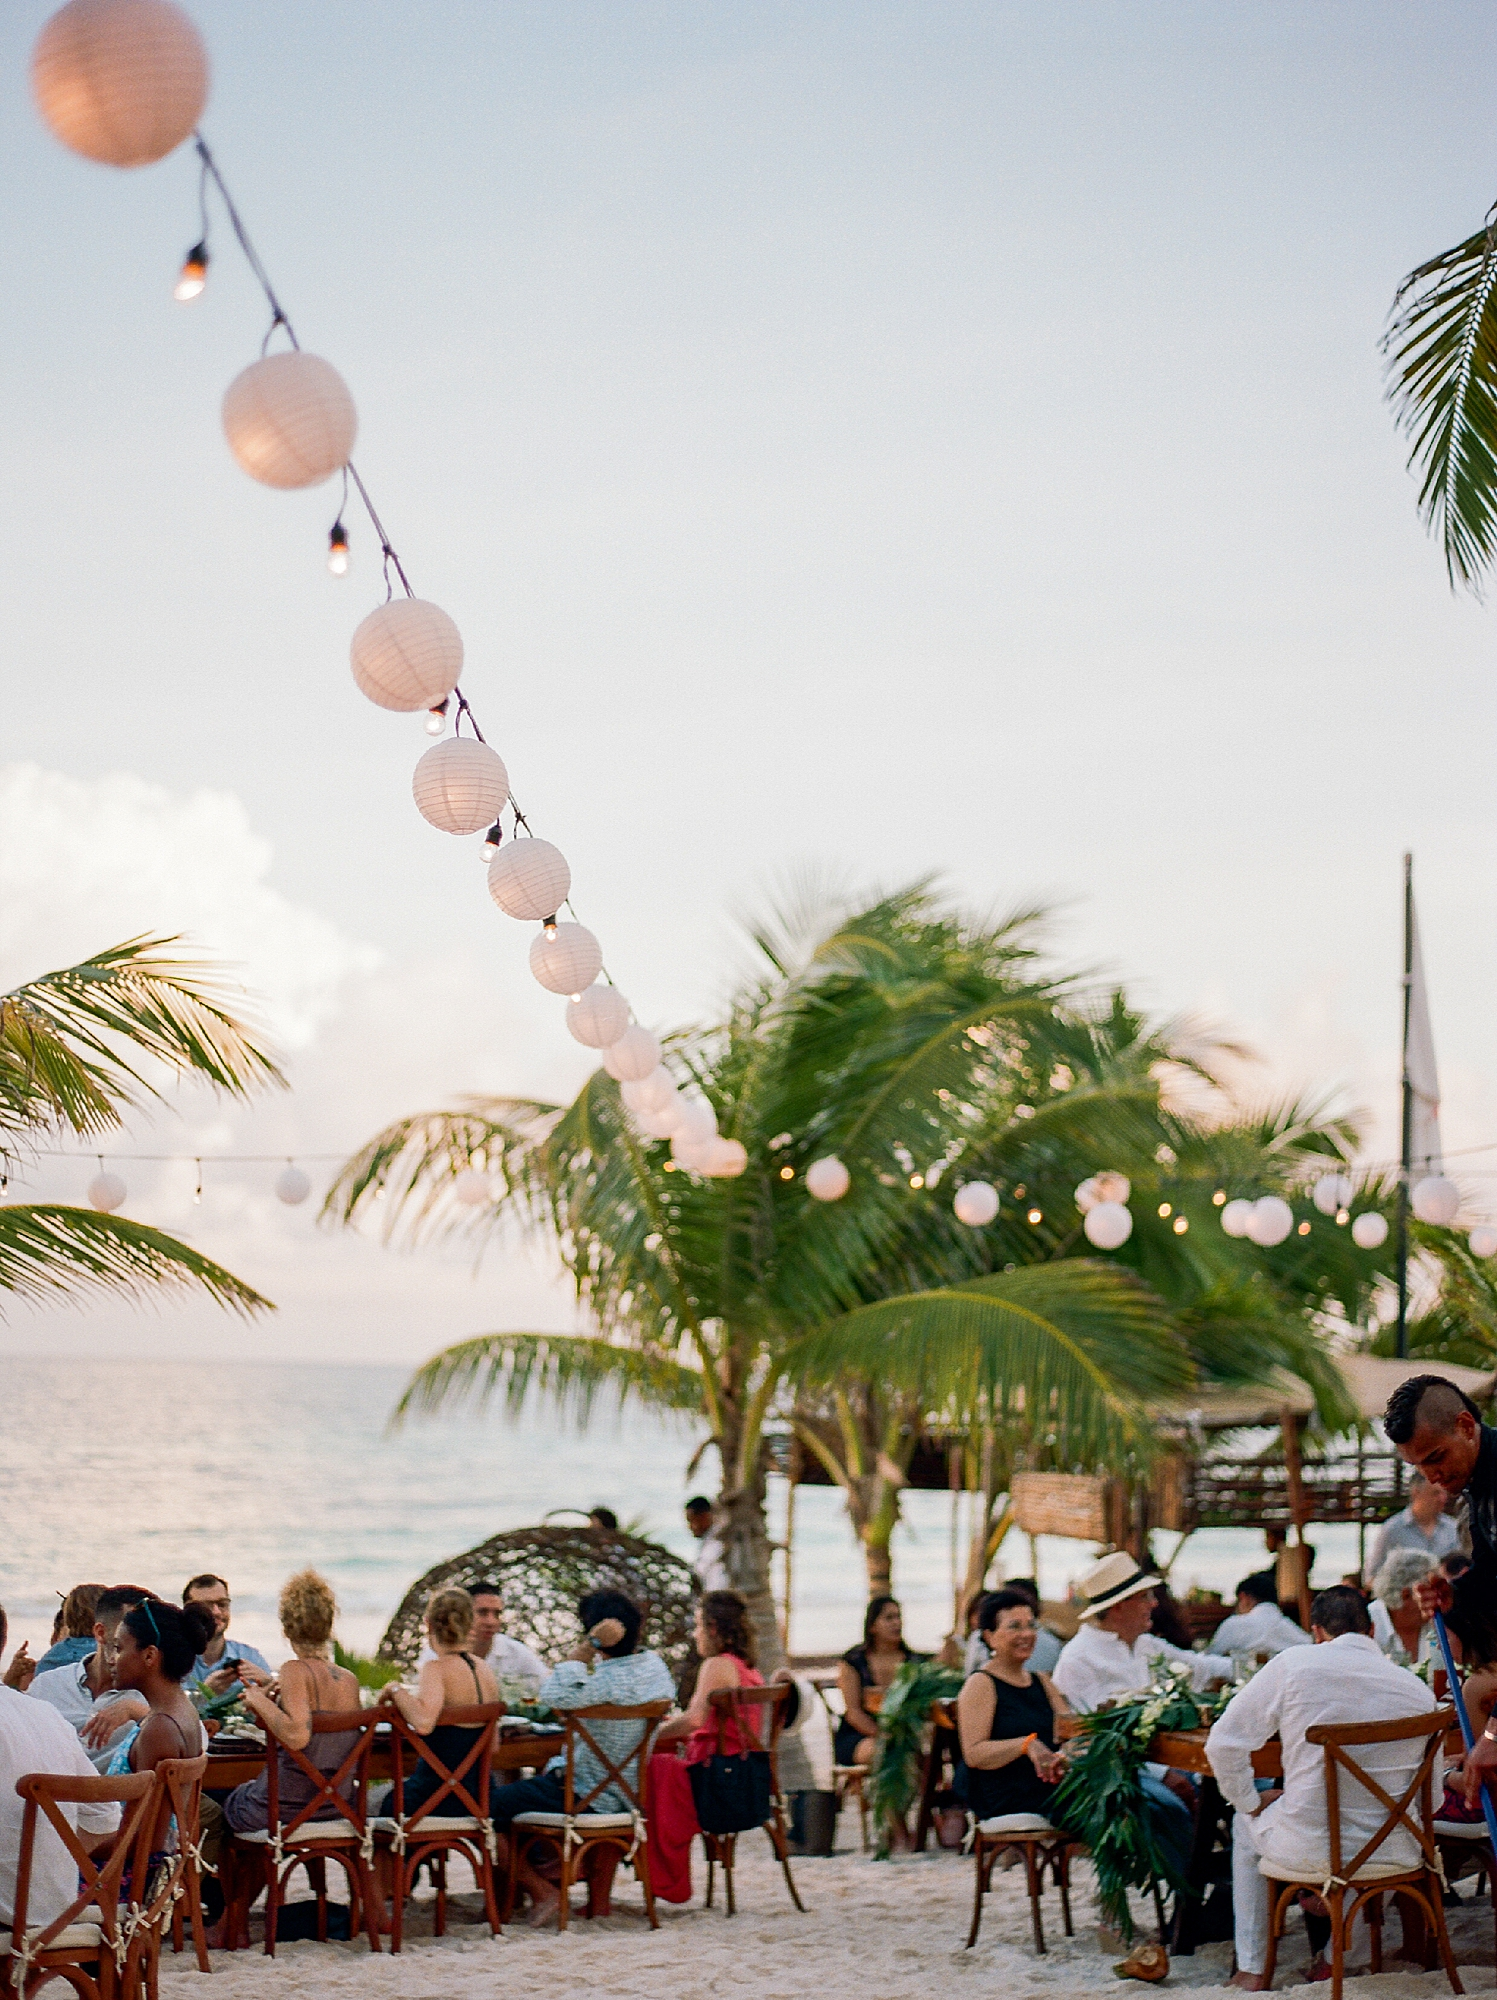 Stylish and Candid Destination Film Wedding Photography in Tulum Mexico by Magdalena Studios 0052.